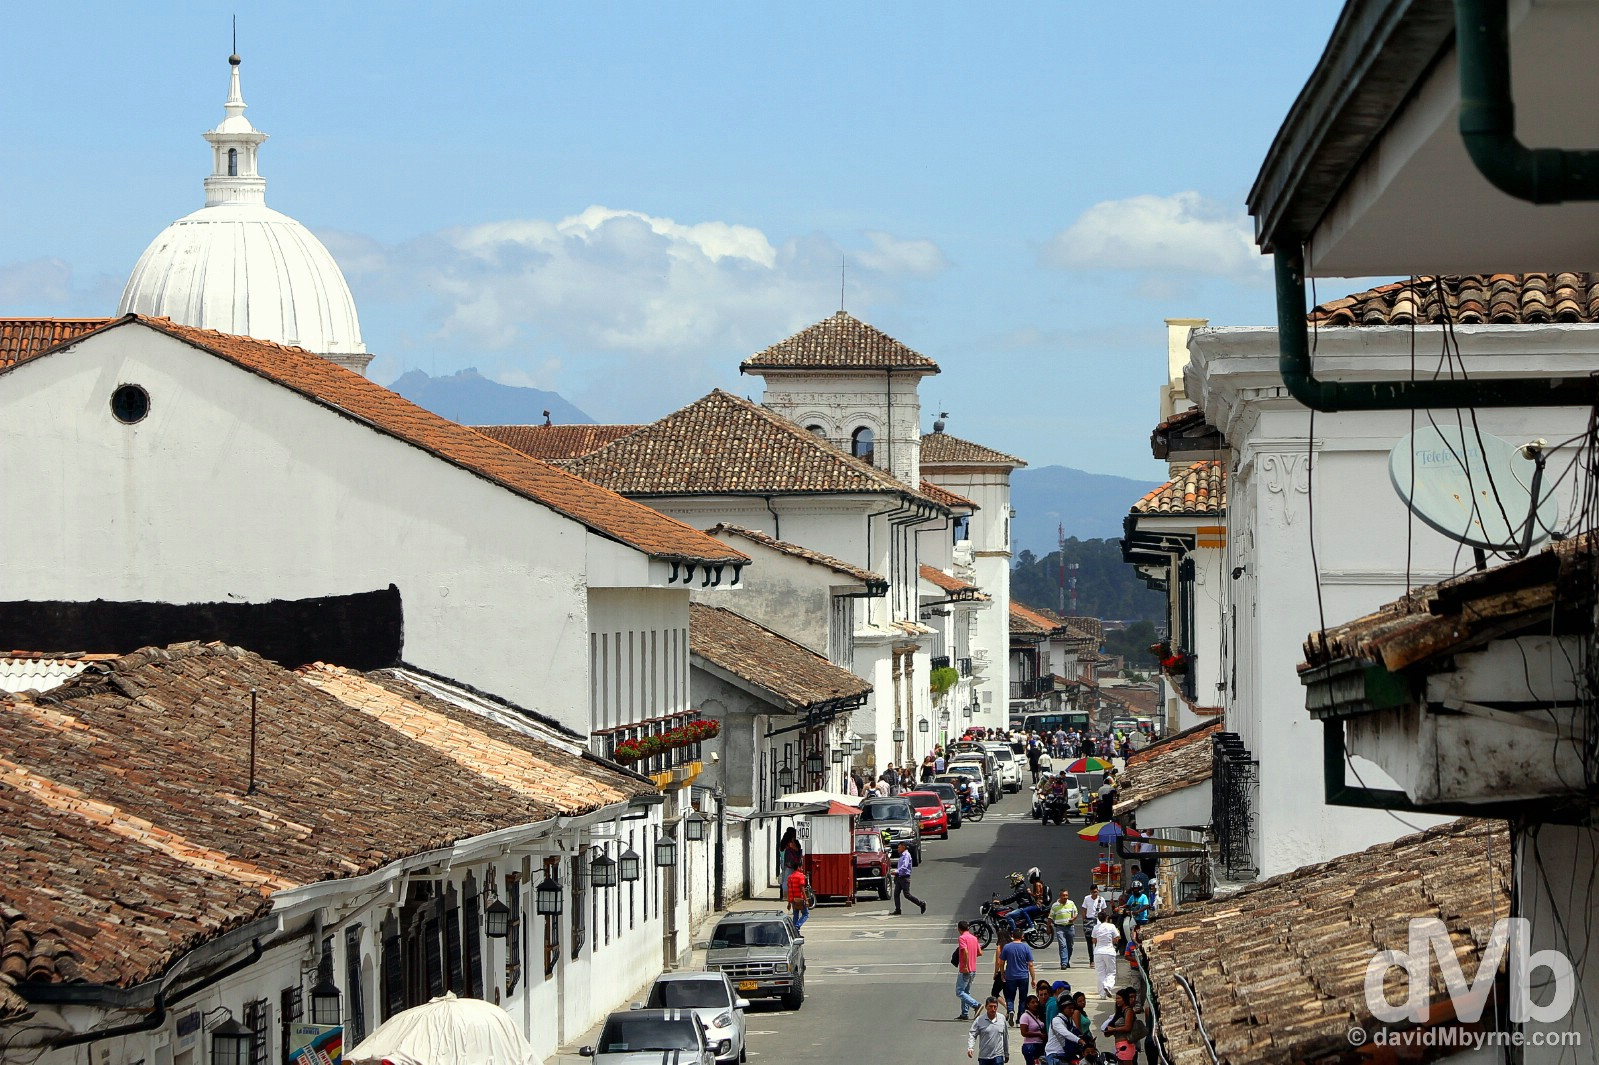 Calle 5, Popayan, Colombia. June 30, 2015.